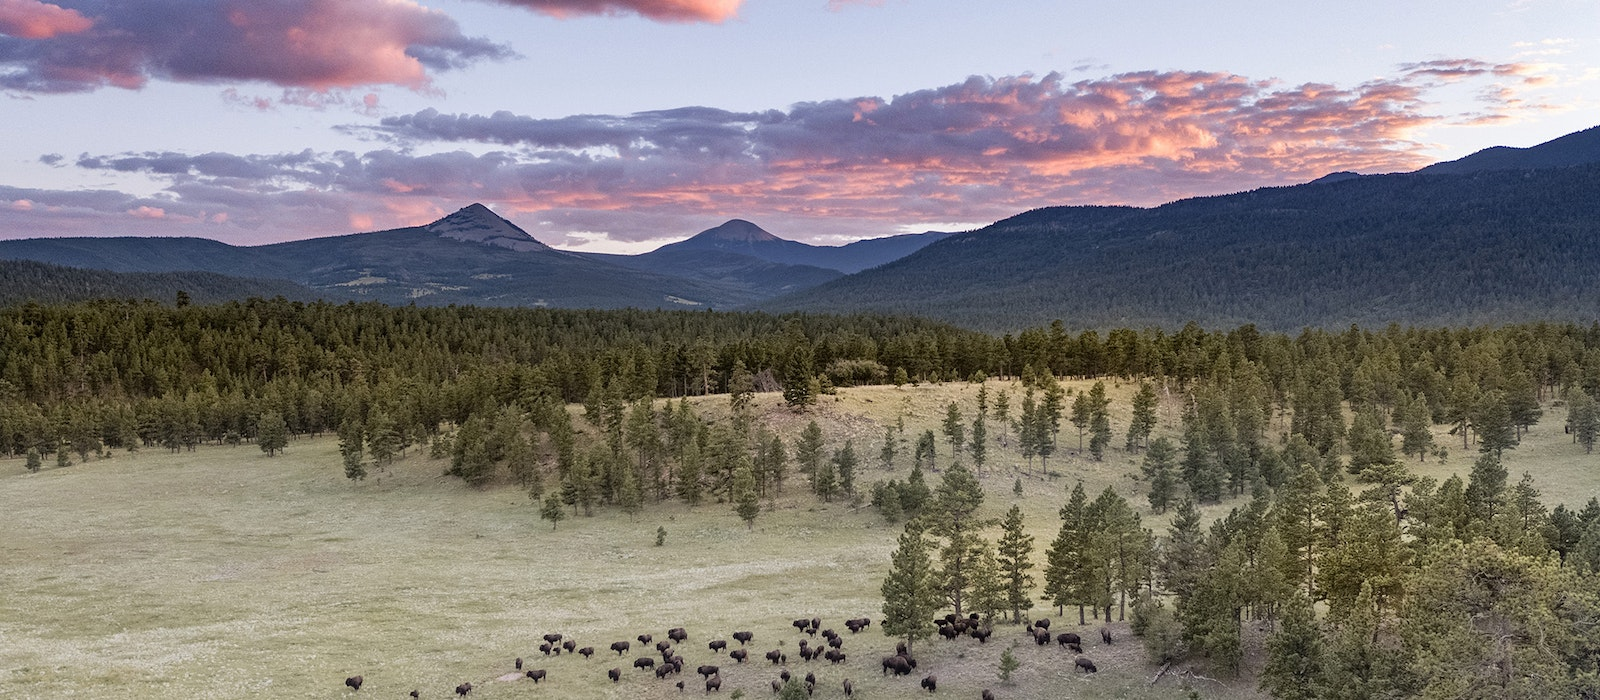 The privately owned Ted Turner Reserves is one of many properties that offer travelers exclusive experiences while also helping to alleviate some of the stresses of overtourism.